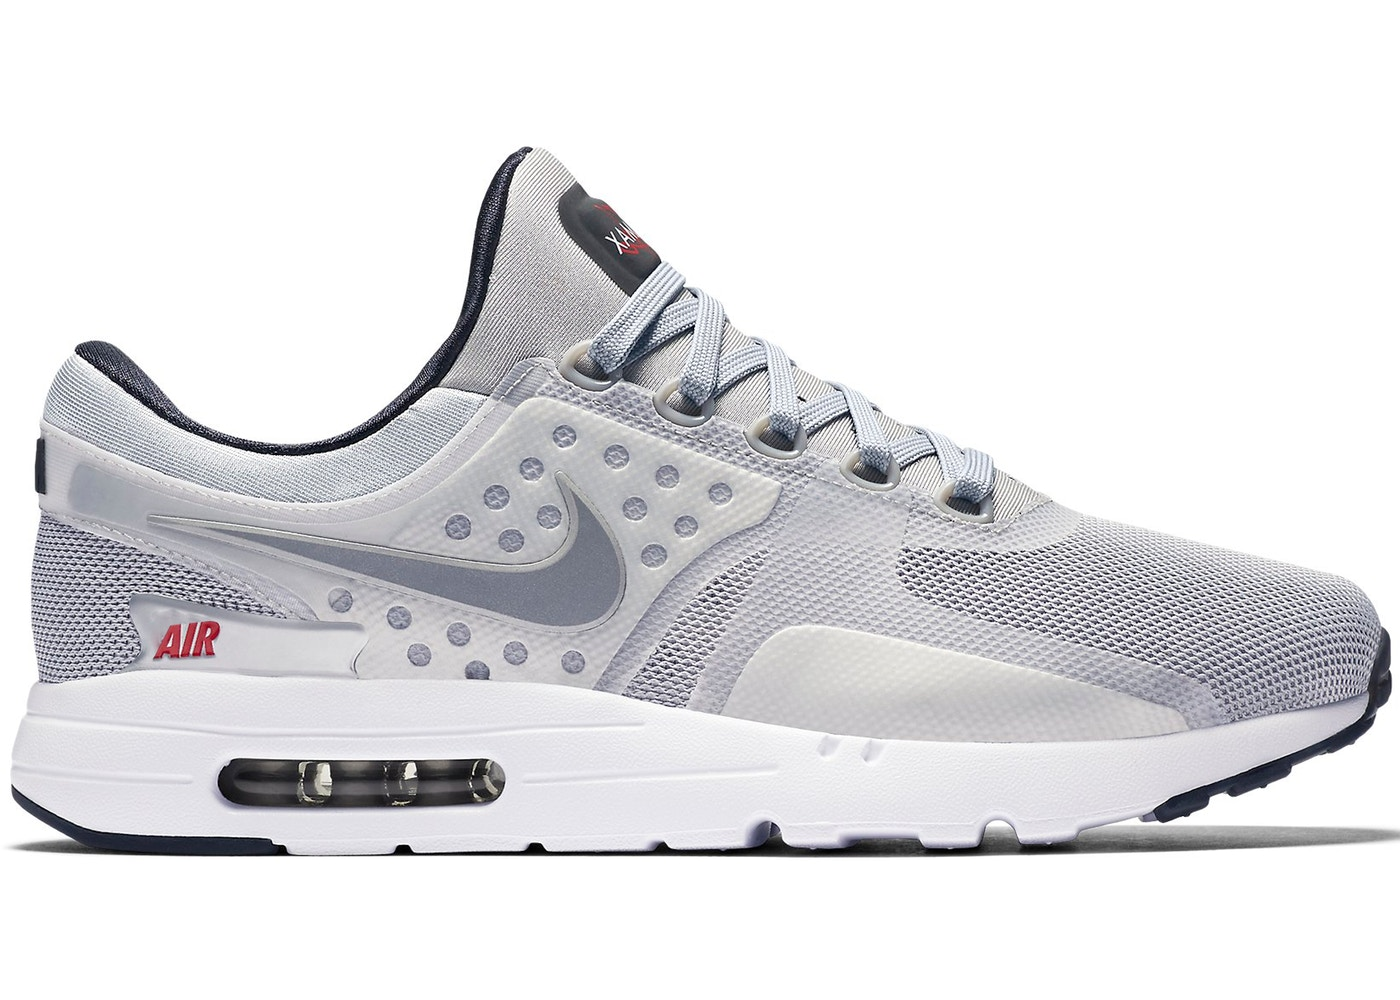 big sale on wholesale new authentic Air Max Zero Silver Bullet